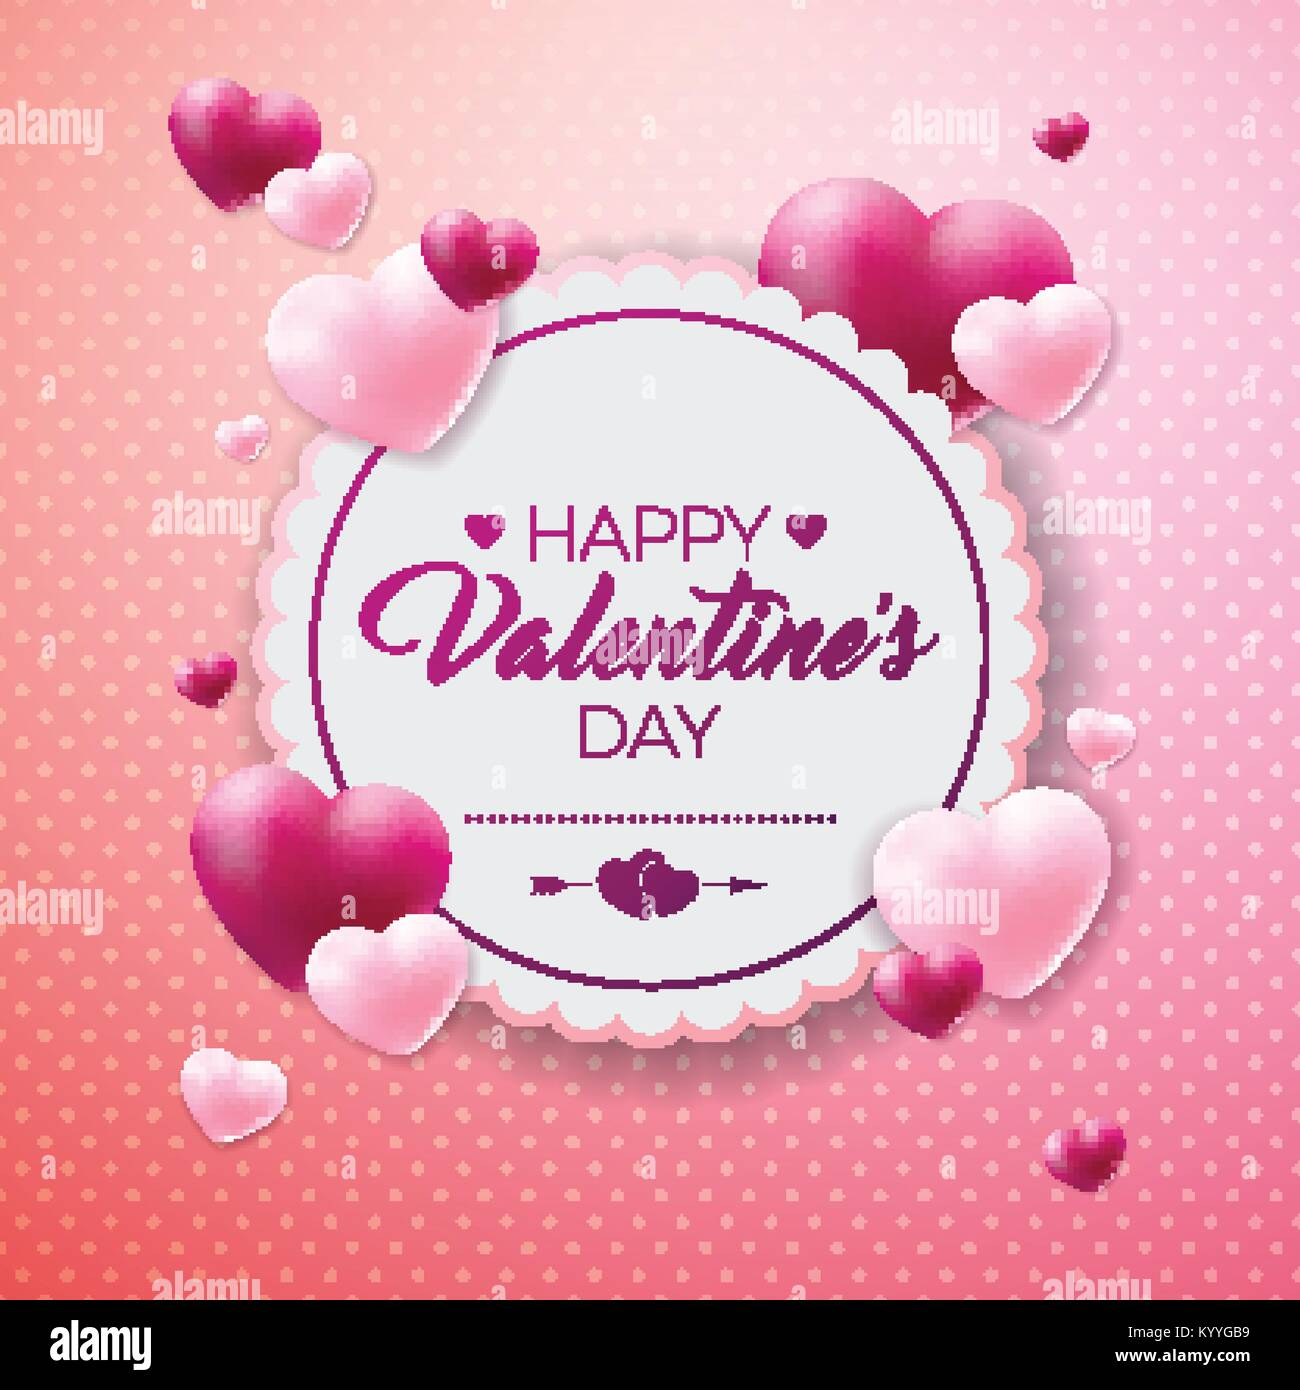 Happy Valentines Day Design With Red Heart On Shiny Background Stock